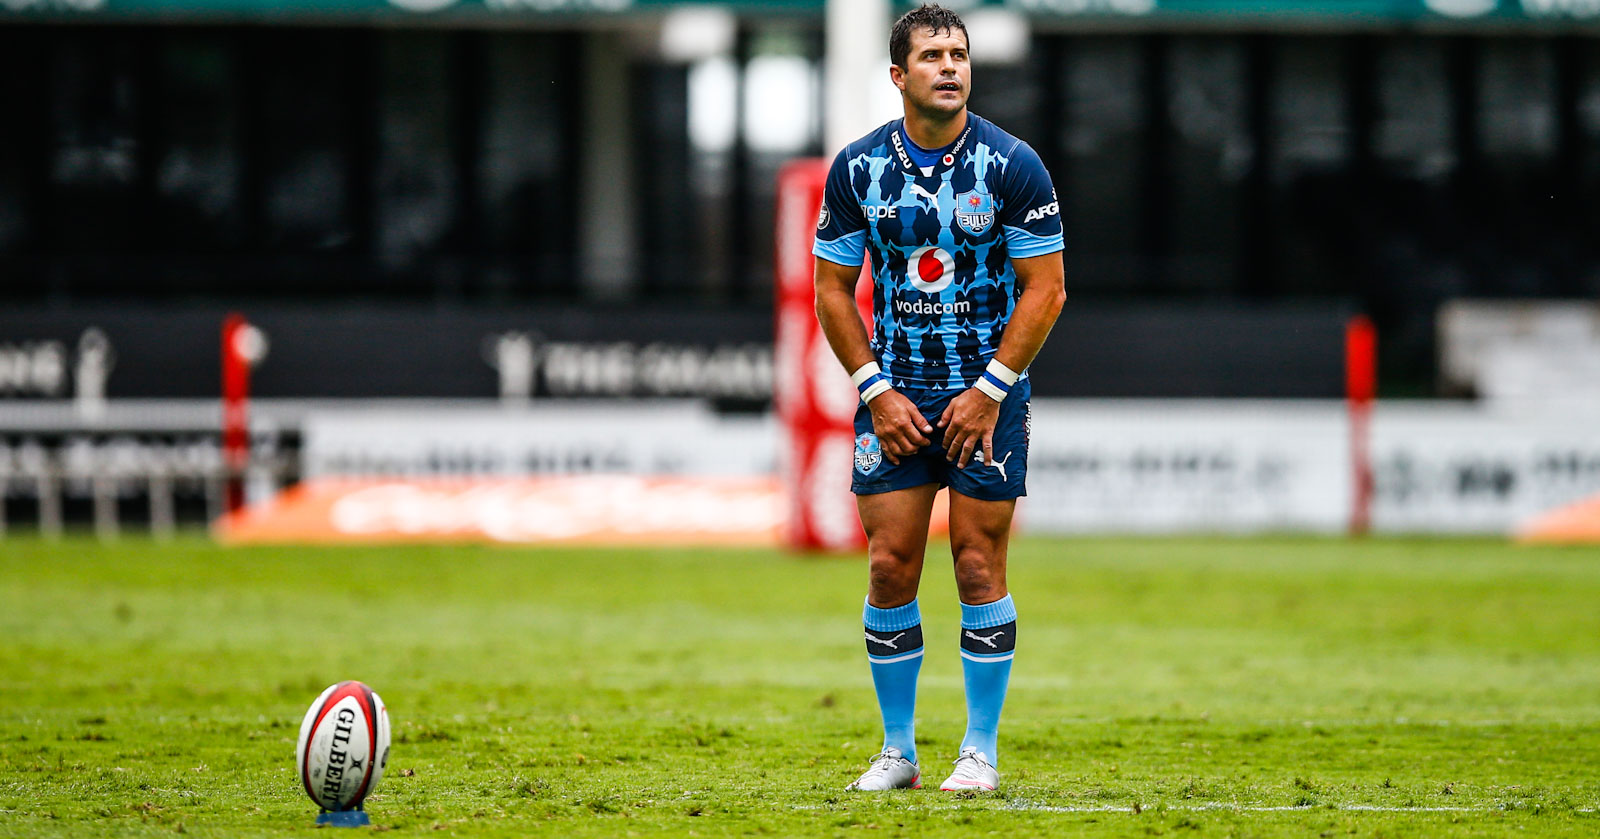 Morne Steyn will make his 100th provincial appearance for the Vodacom Bulls